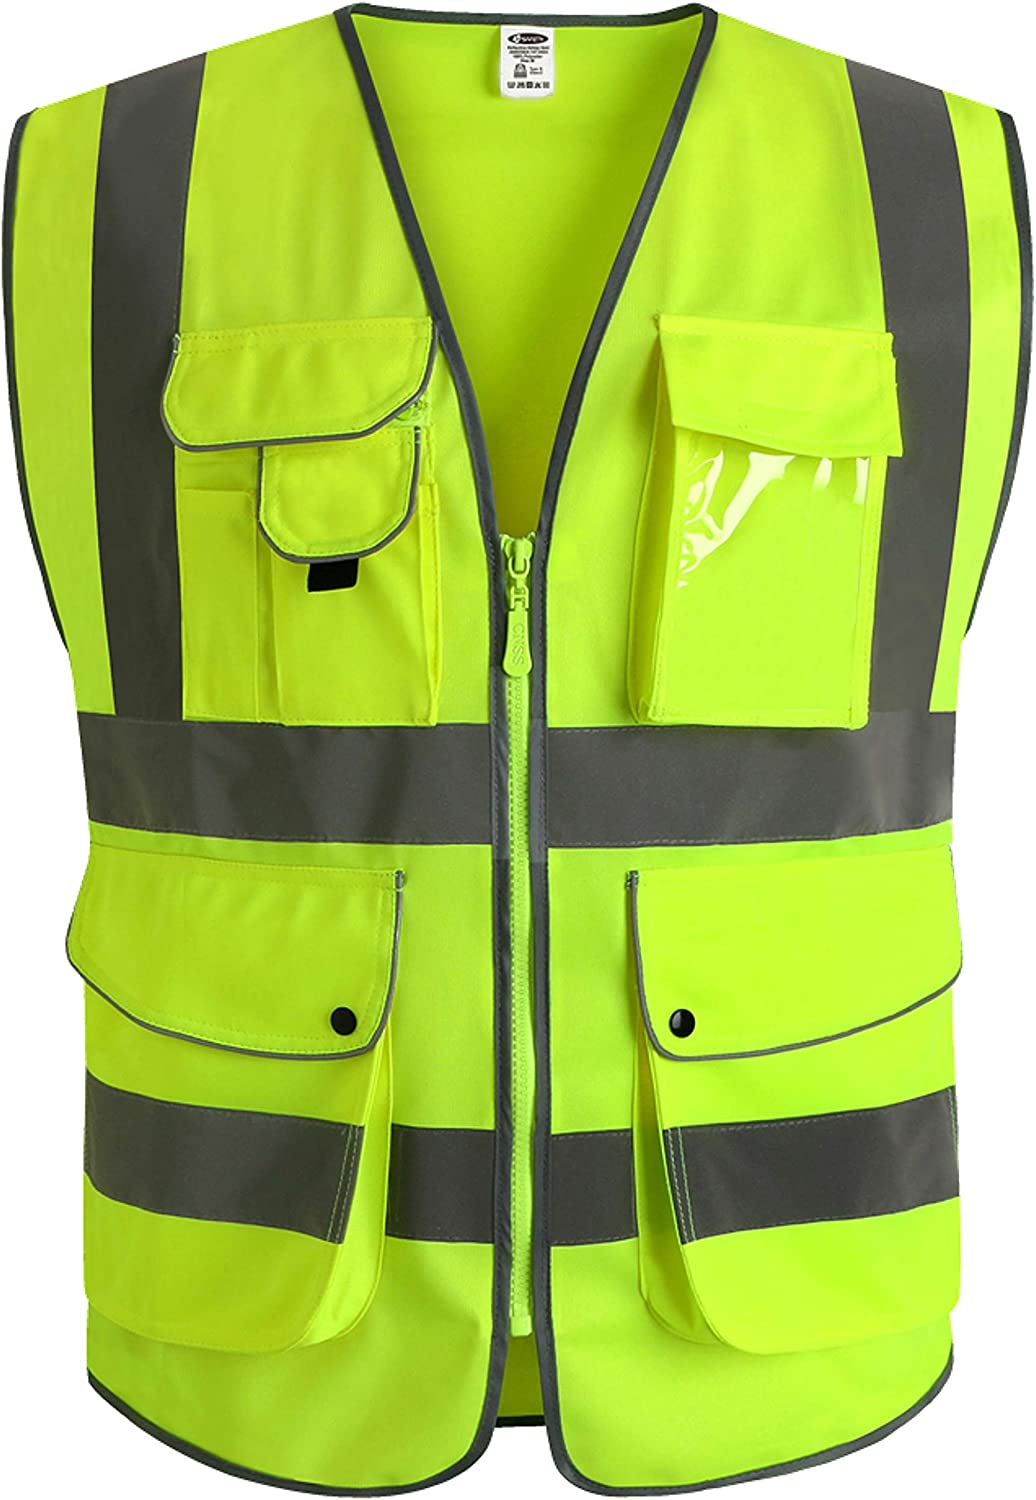 Small Product Image of JKSafety Class 2 High Visibility Safety Vest